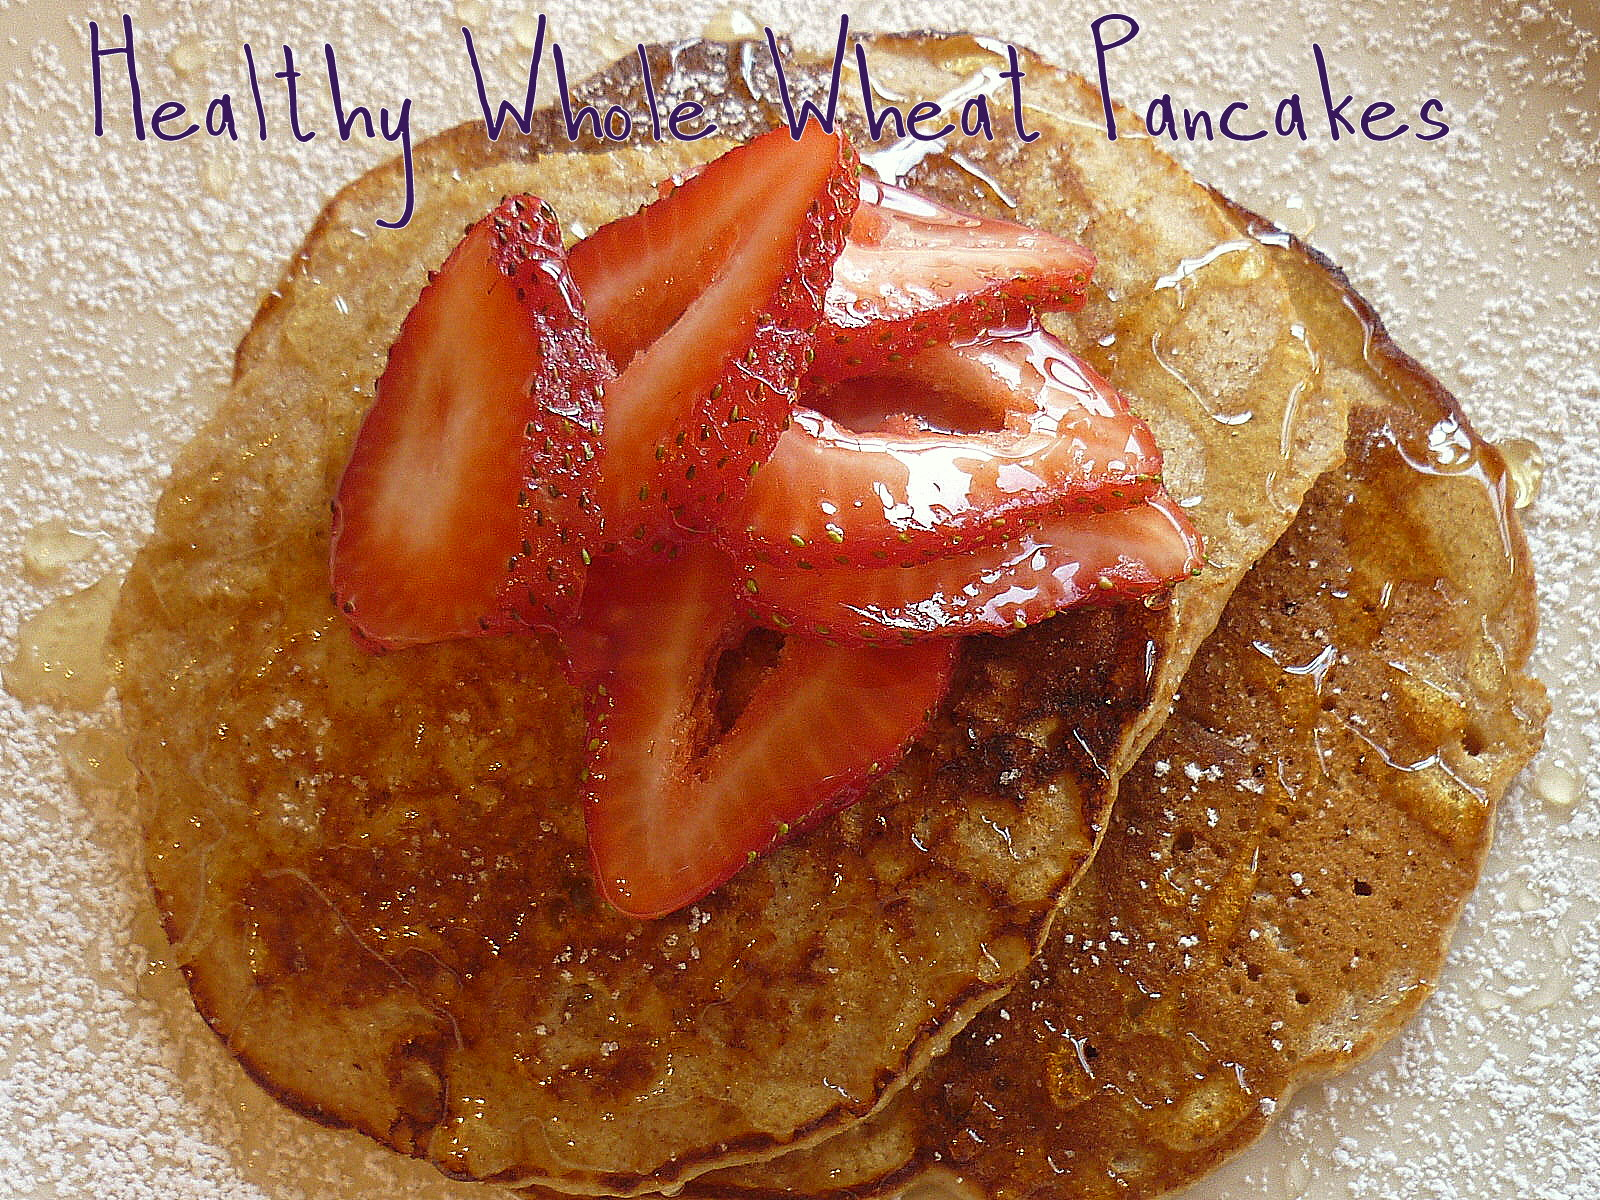 Healthy Whole Wheat Pancakes - Sprinkled with Flour